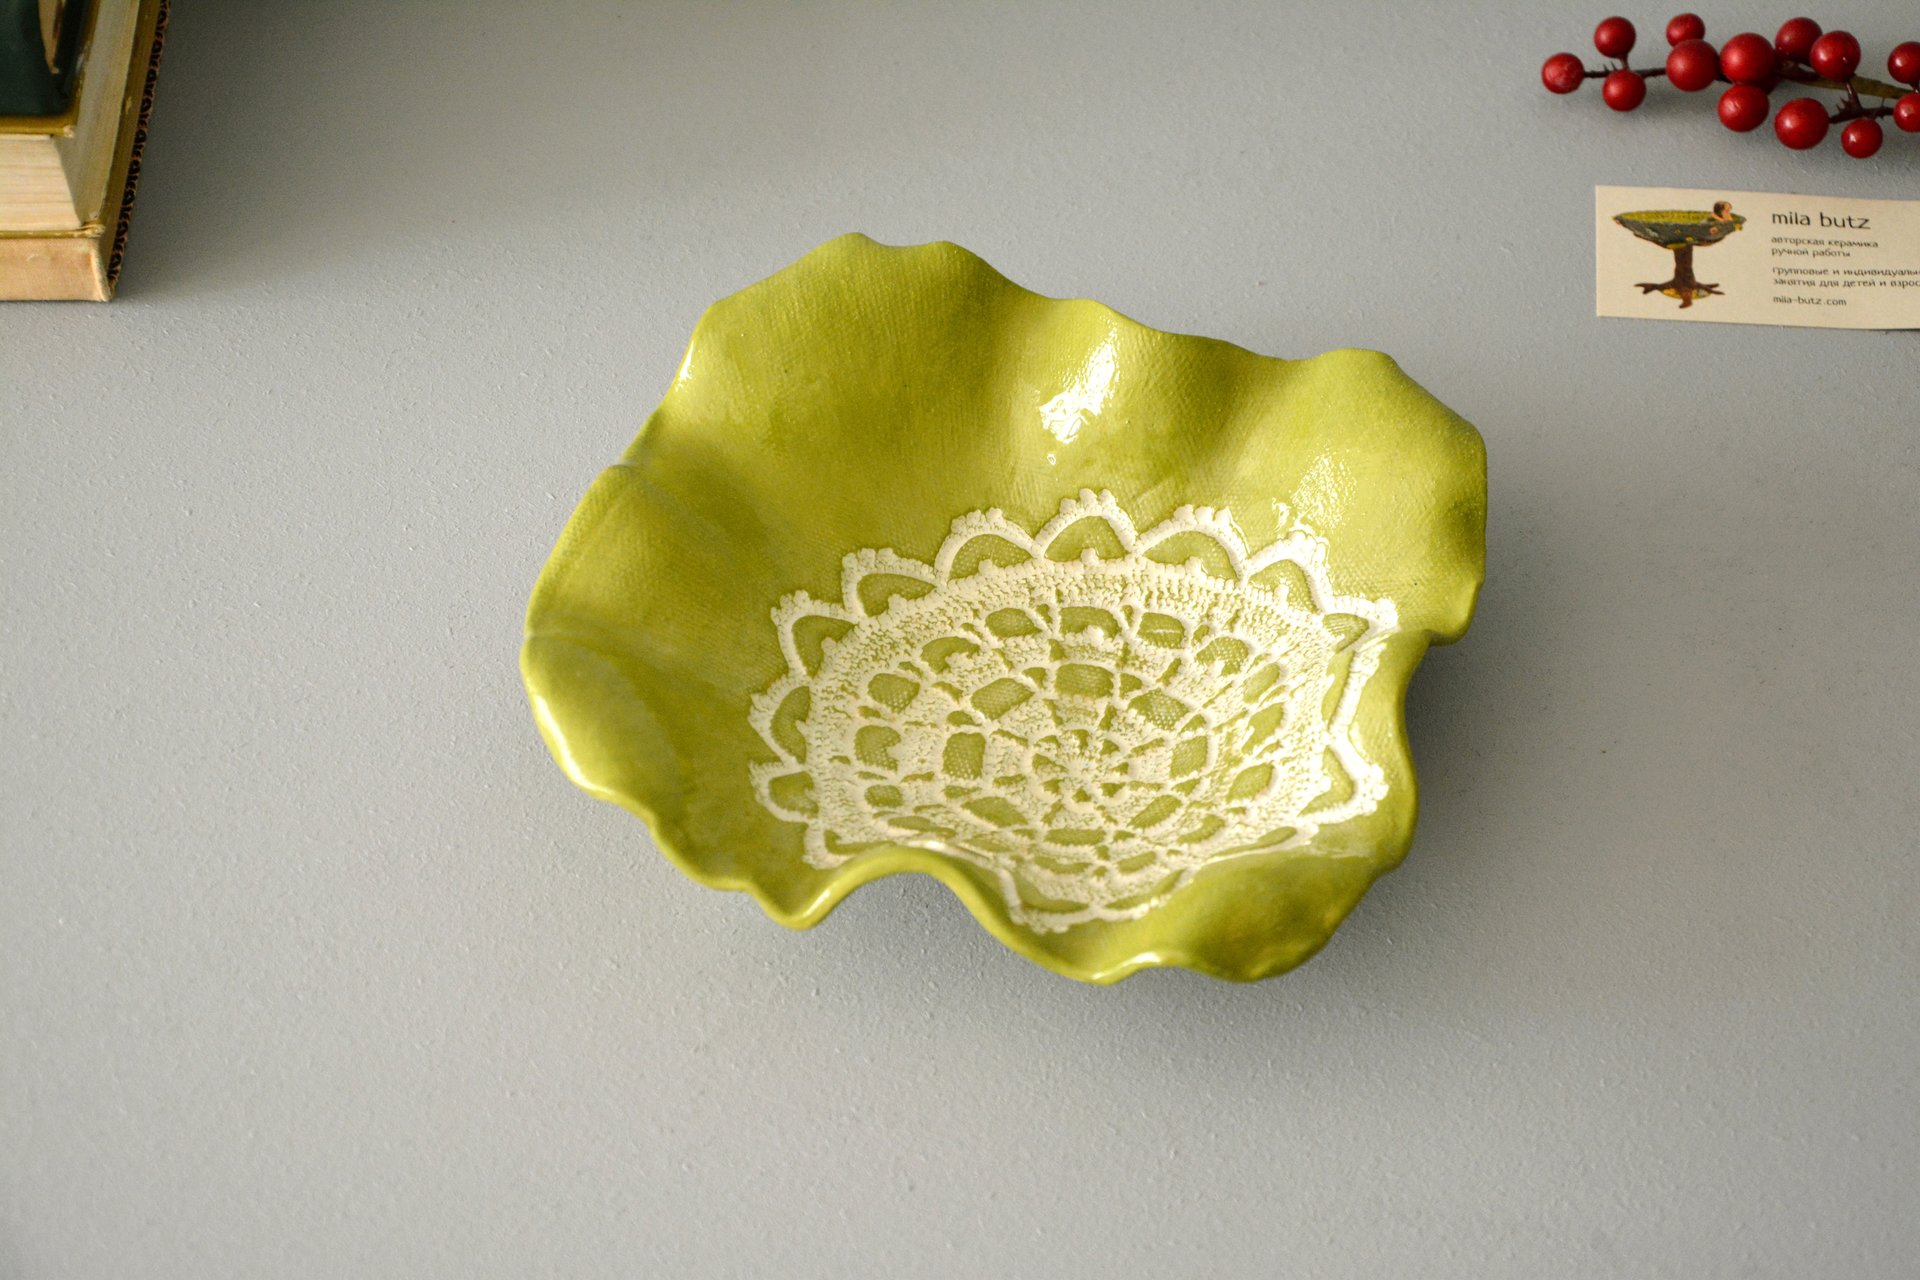 Green ceramic green square dish, dimensions 20 * 20 cm, height - 5,5 cm, photo 2 of 3.